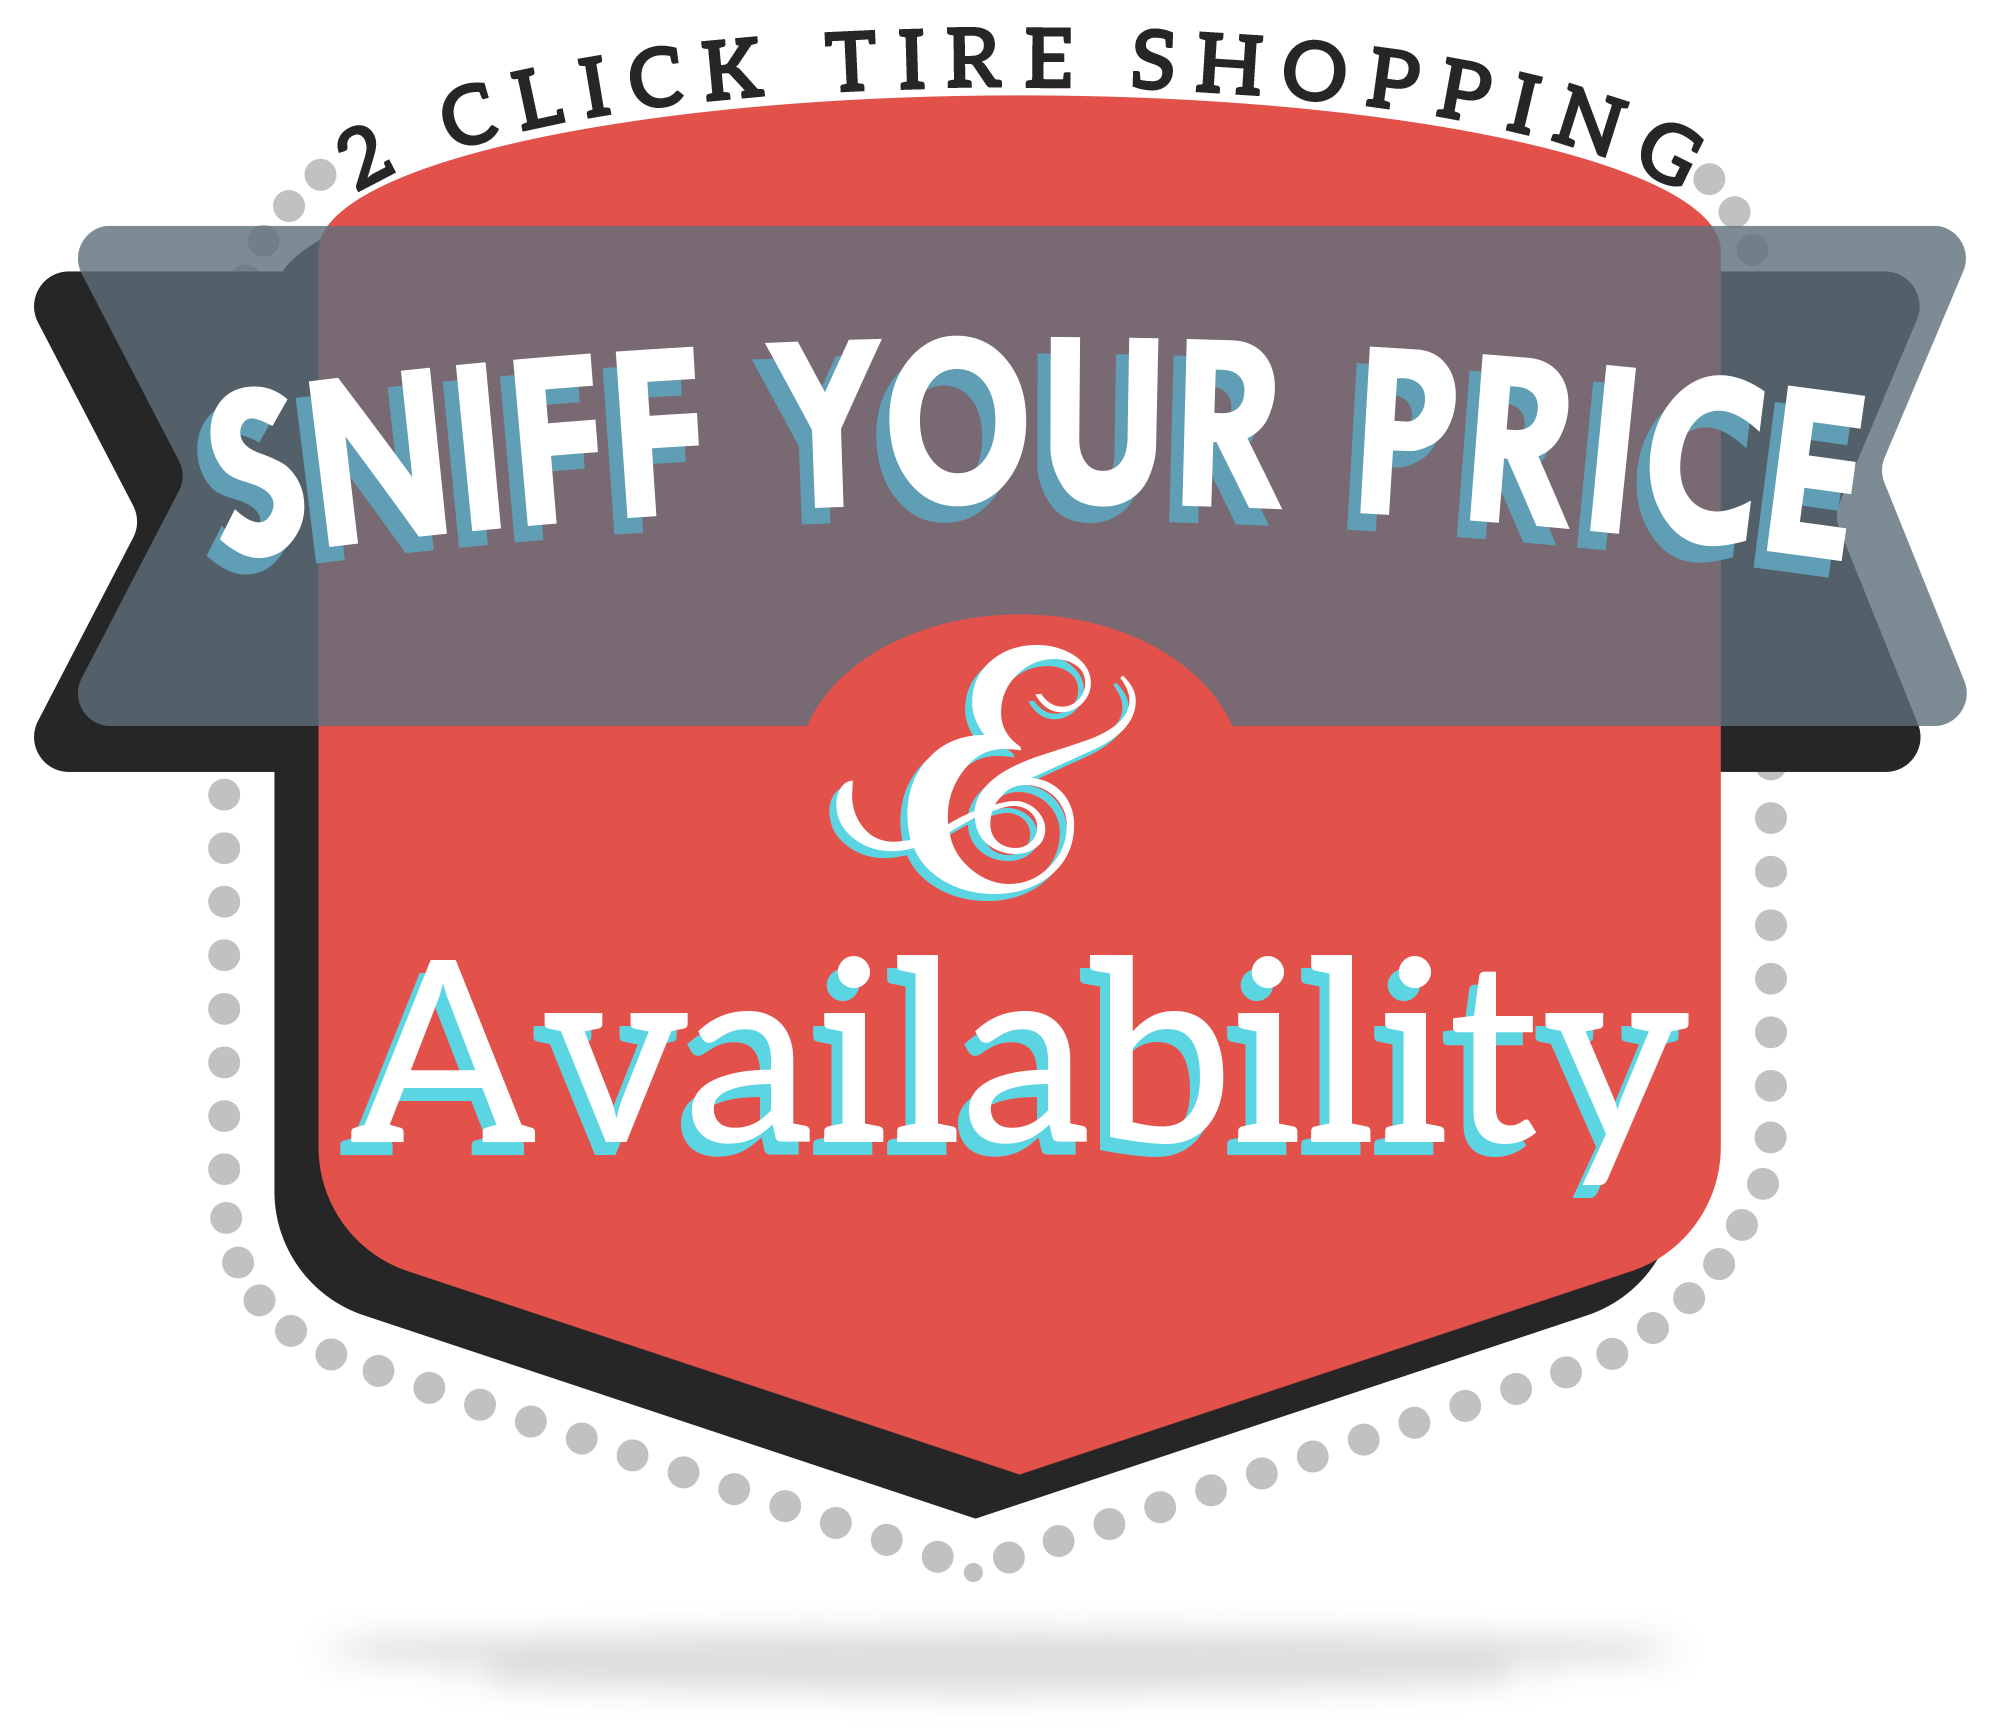 Sniff-Your-Price-LOGO-V2.2-w-shadow.png